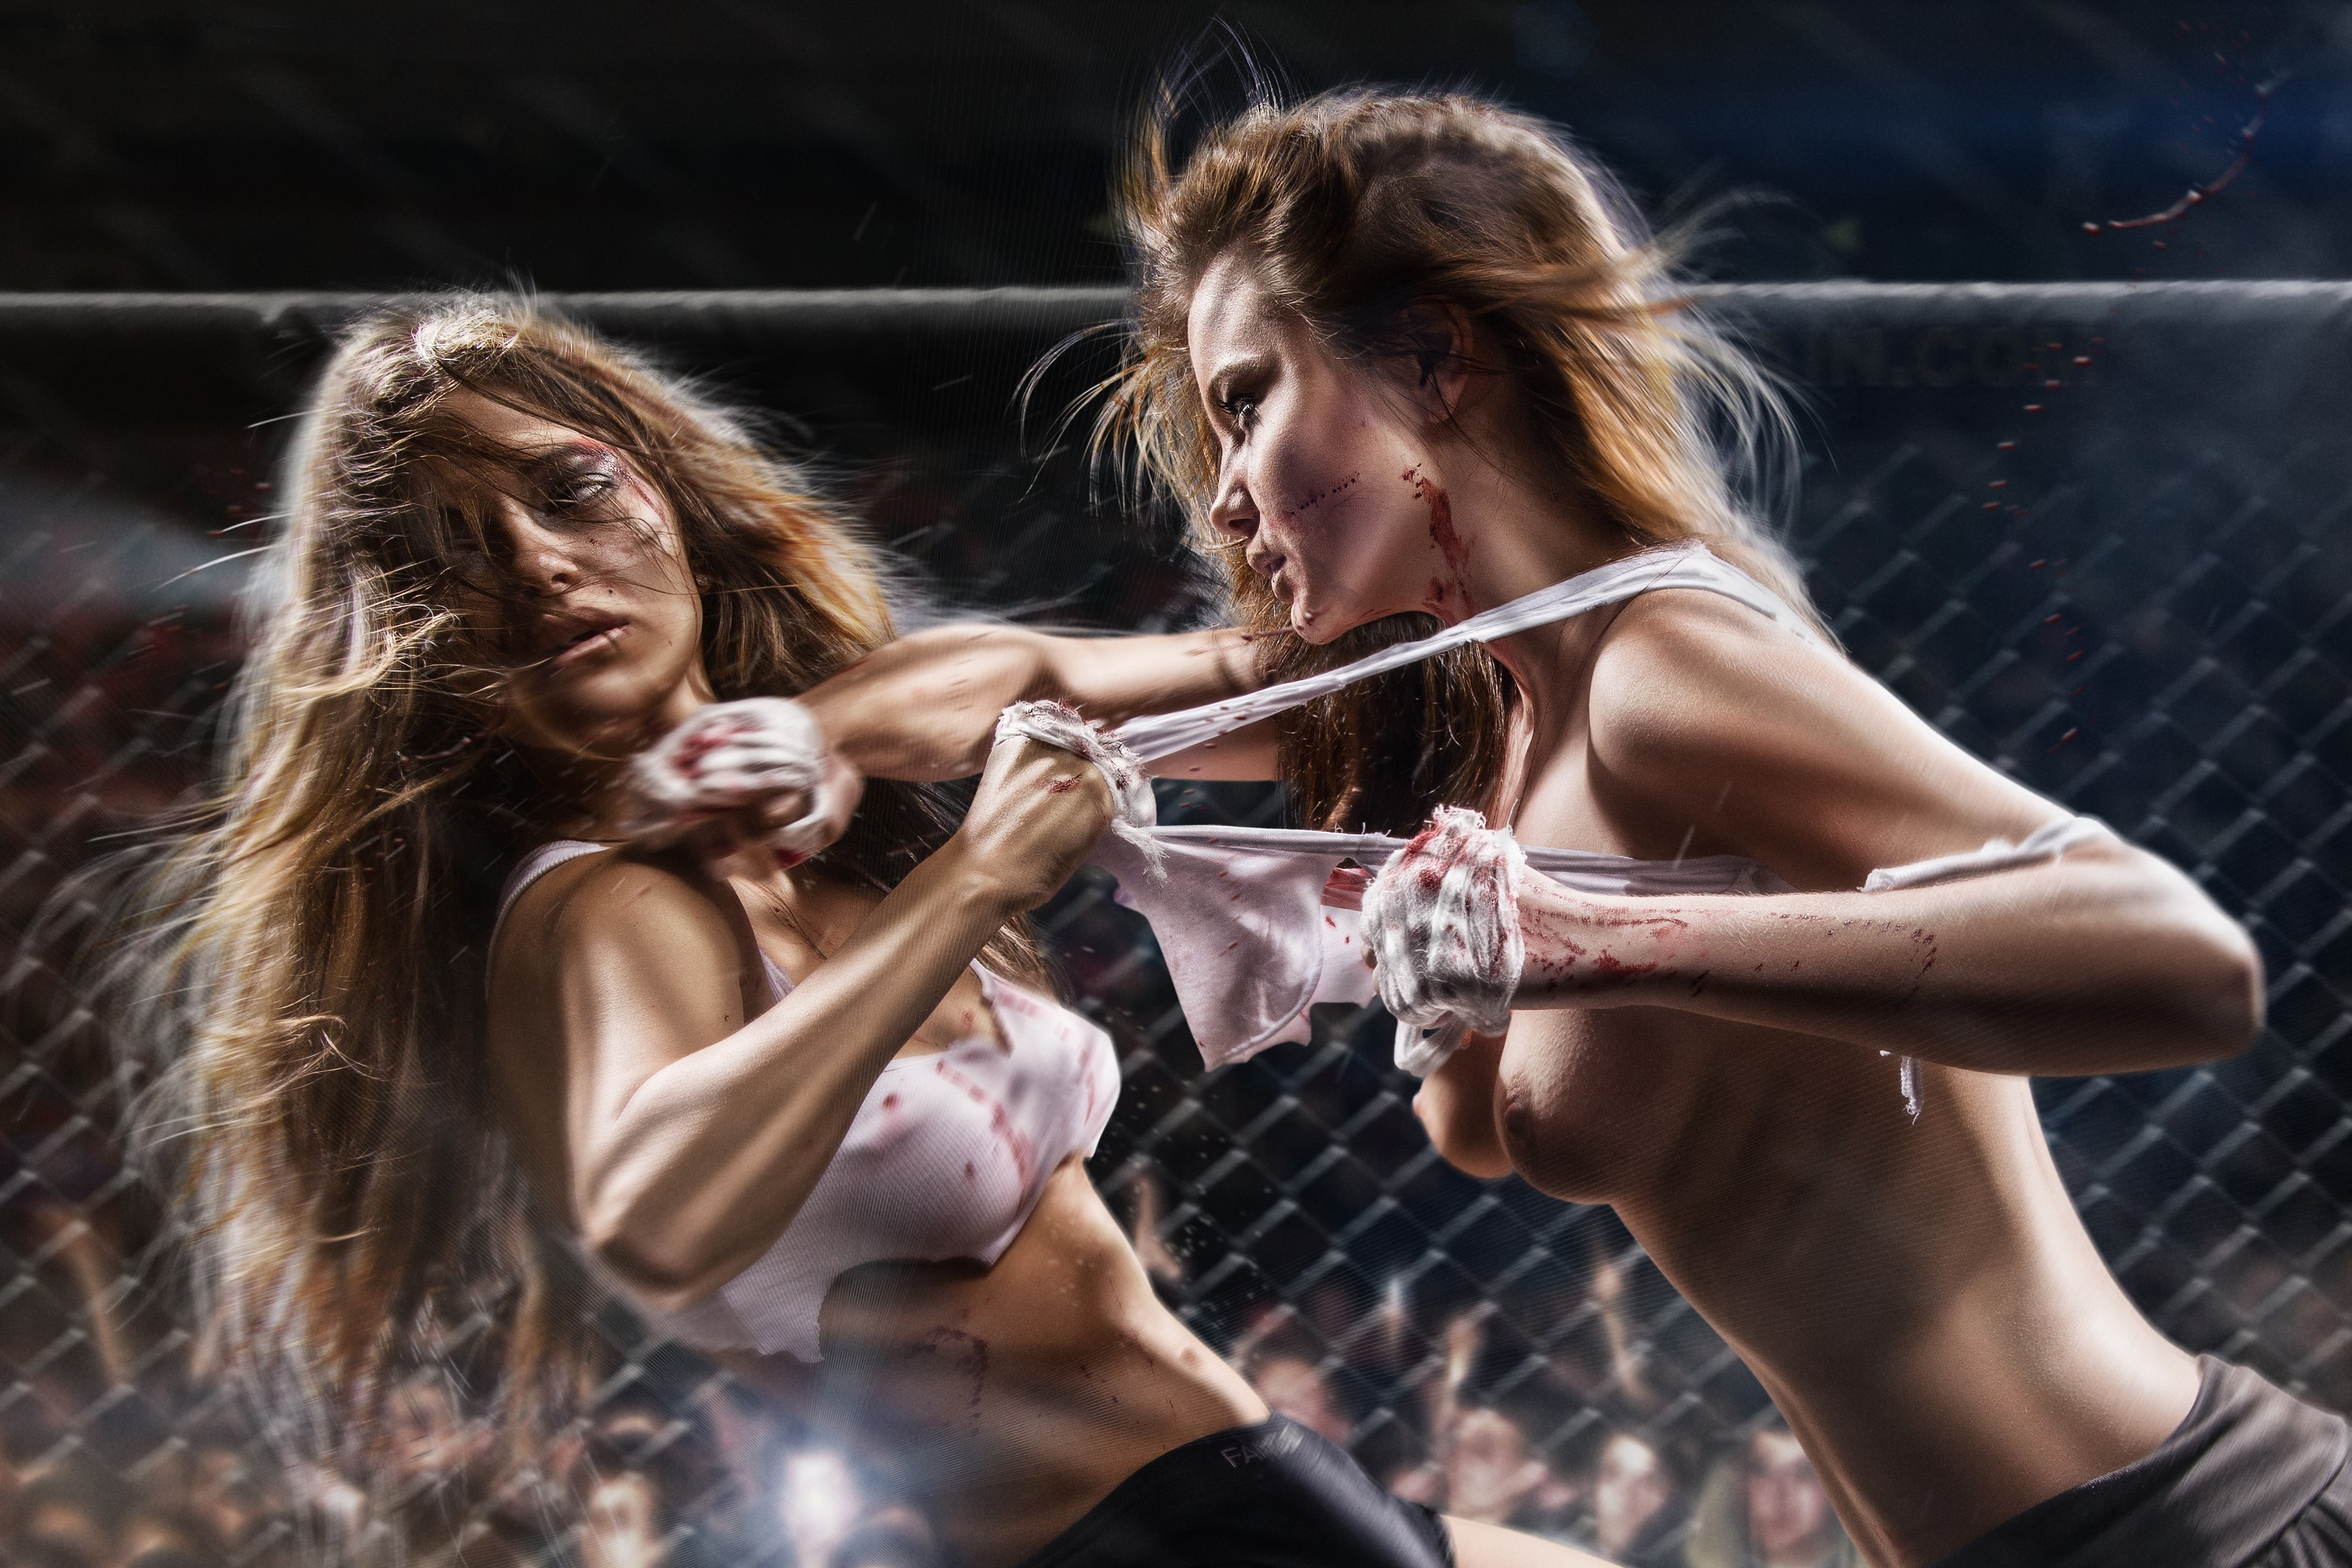 girl-strippet-fight